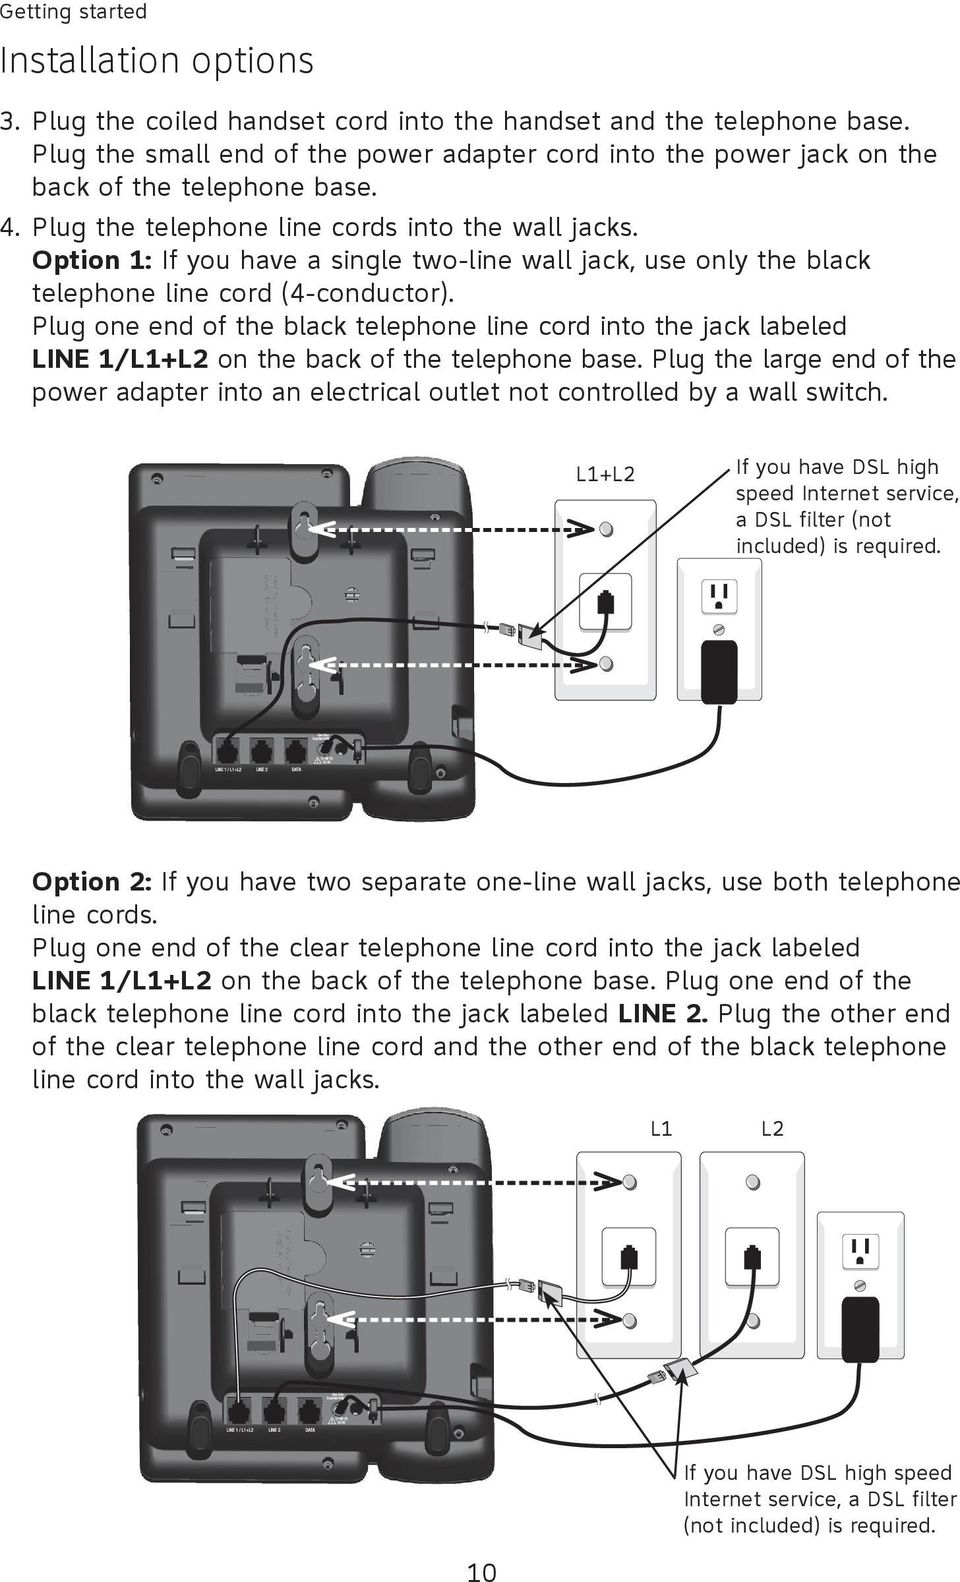 Option 1: If you have a single two-line wall jack, use only the black telephone line cord (4-conductor).